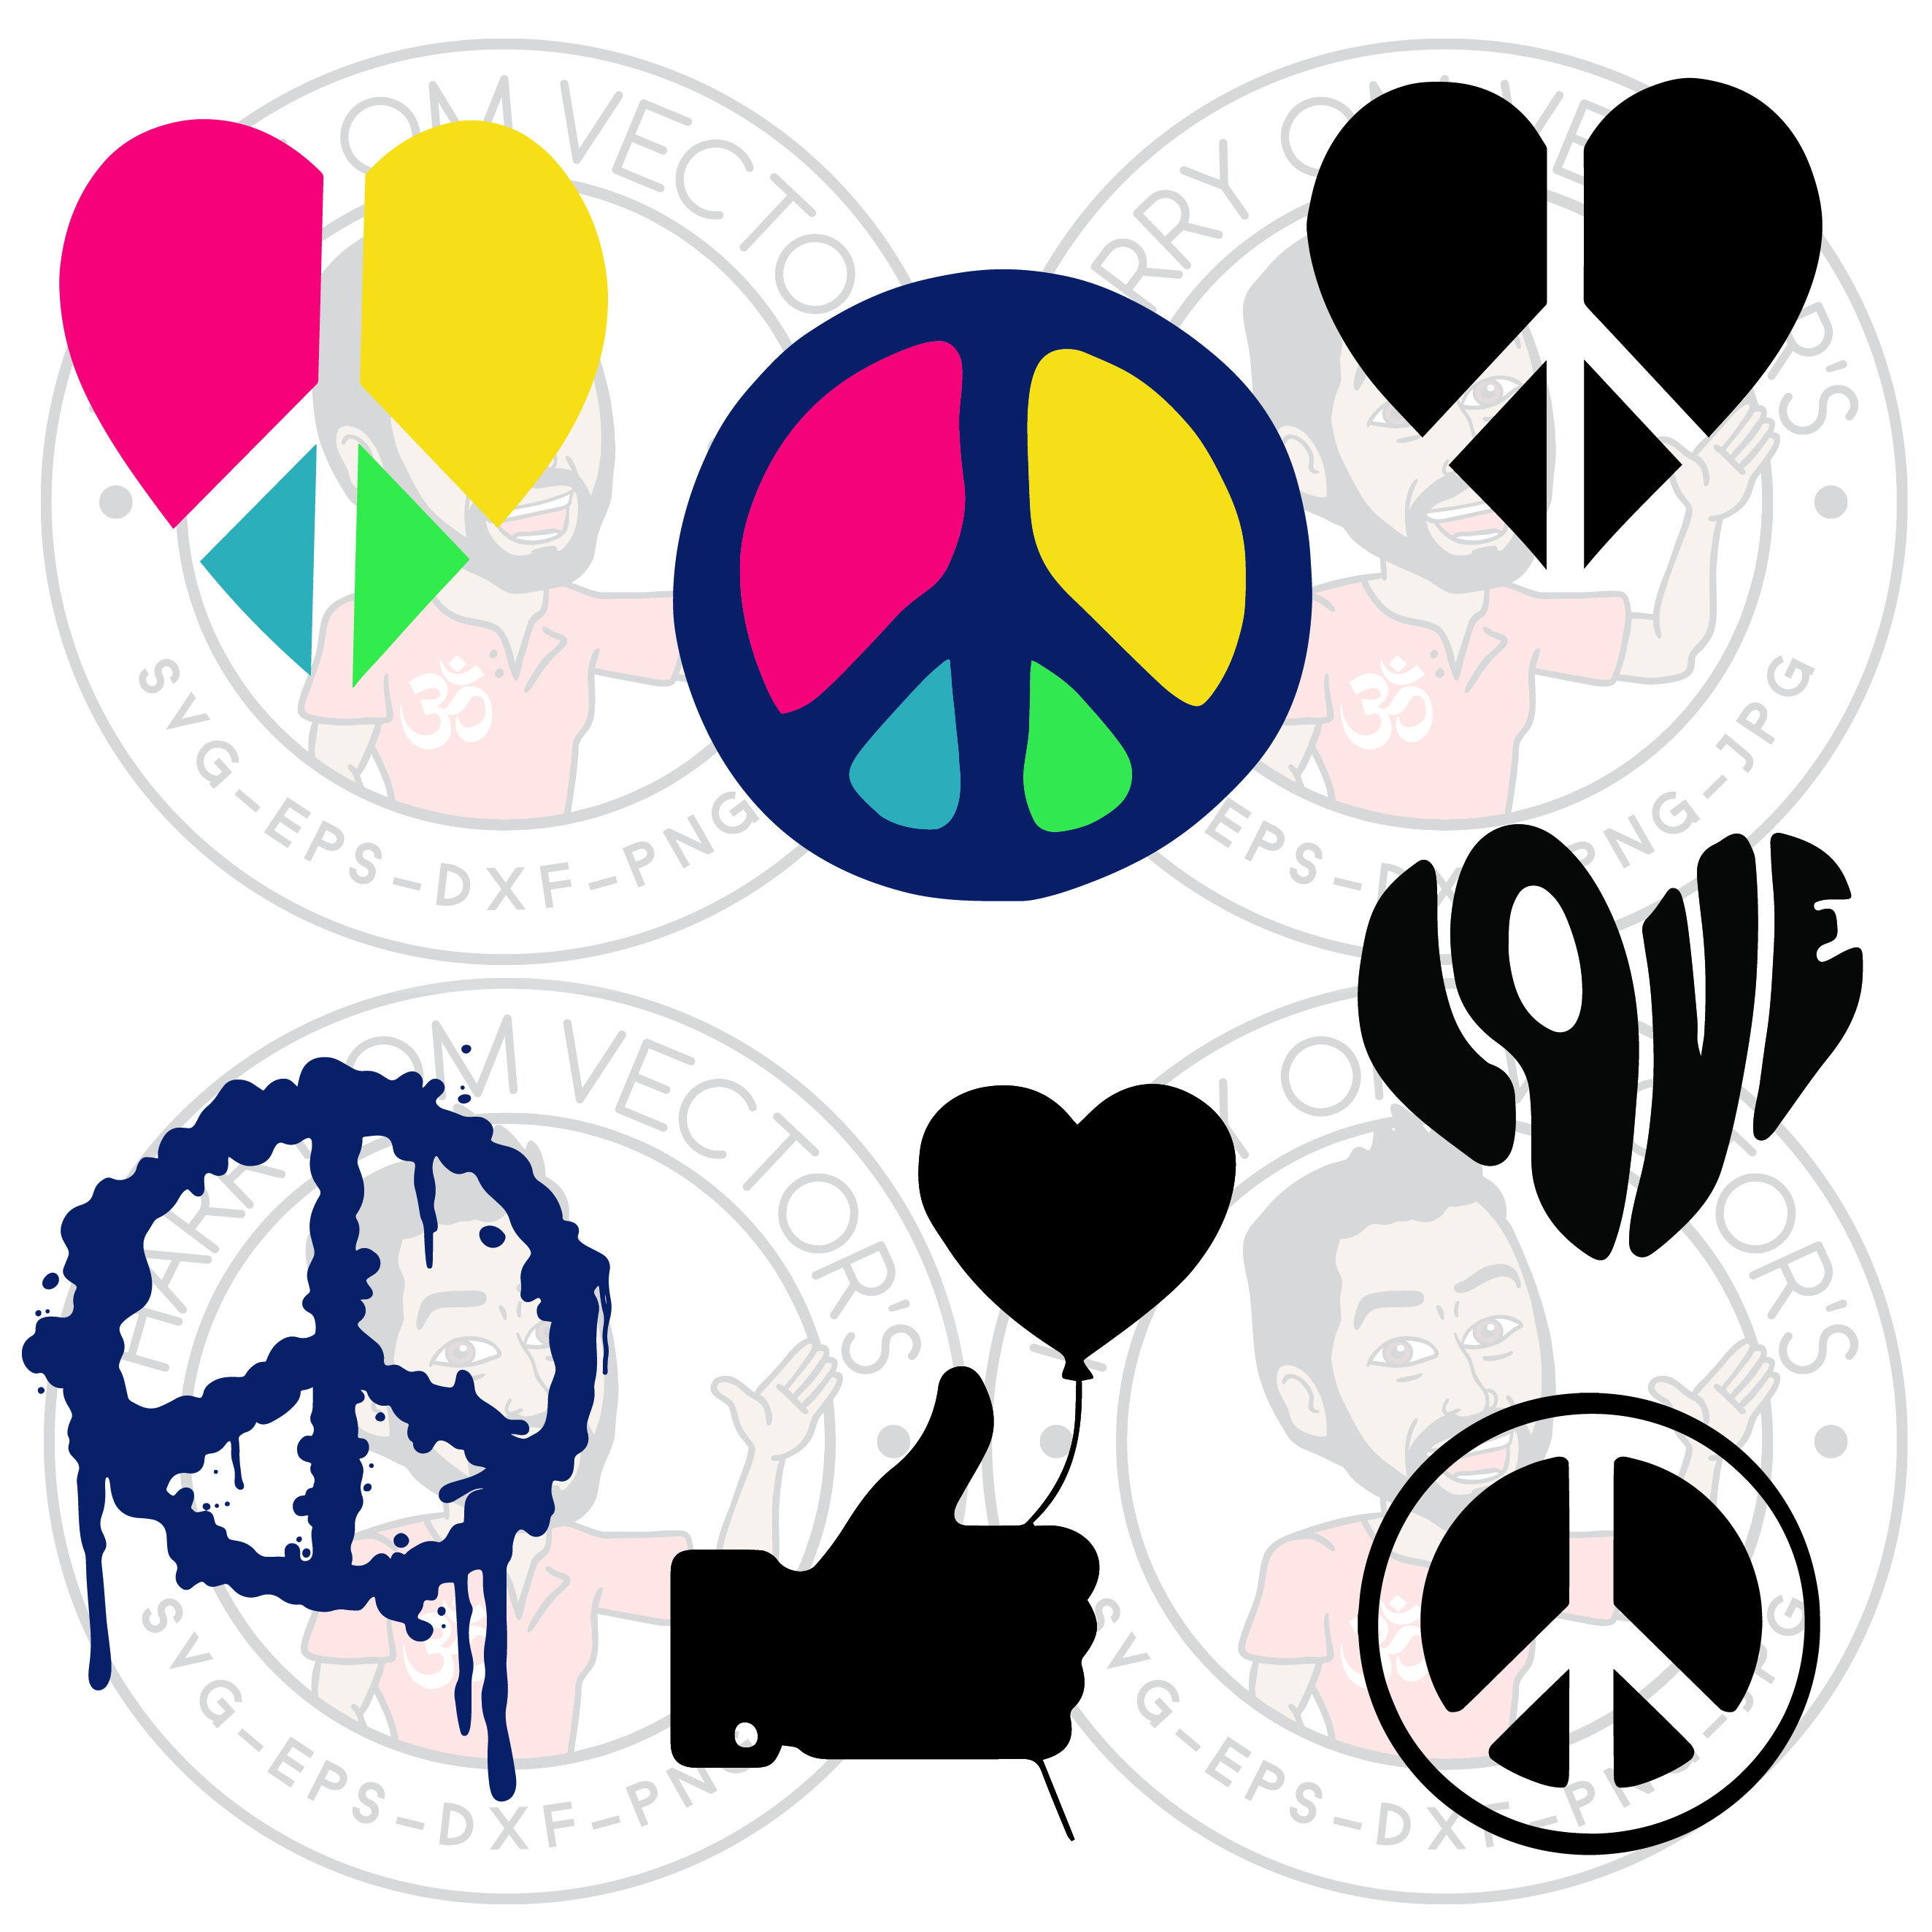 Peace Dove clipart groovy Up dxf digital  Vectors